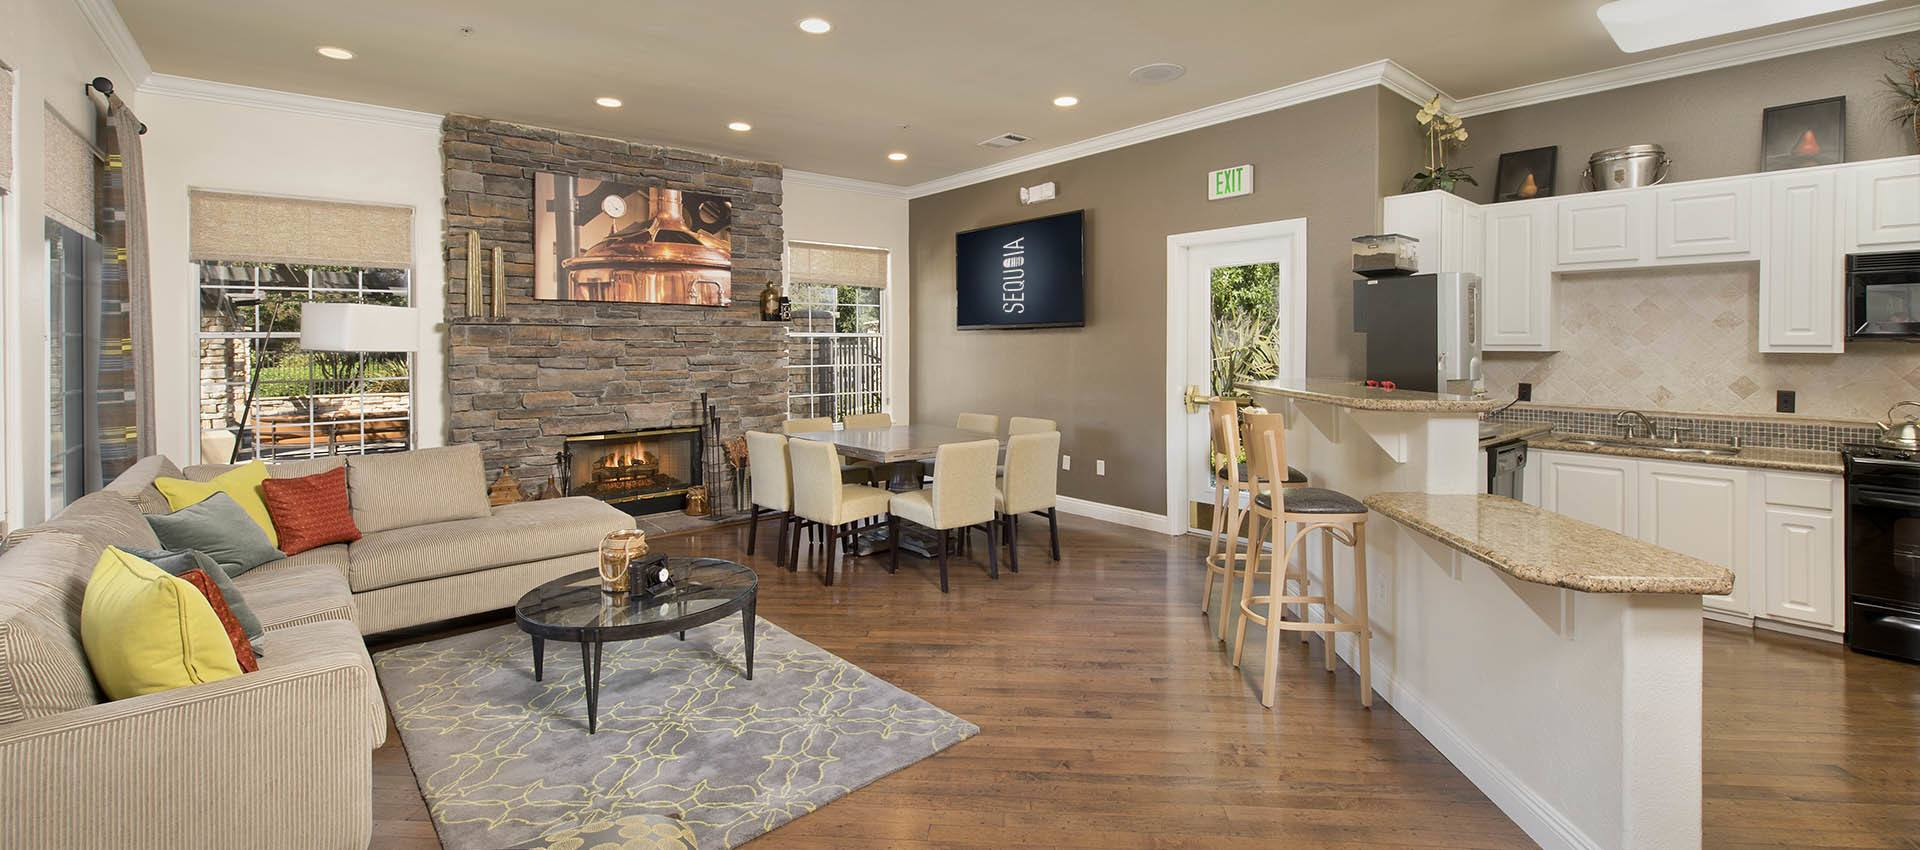 Clubhouse Seating Area at River Oaks Apartment Homes in Vacaville